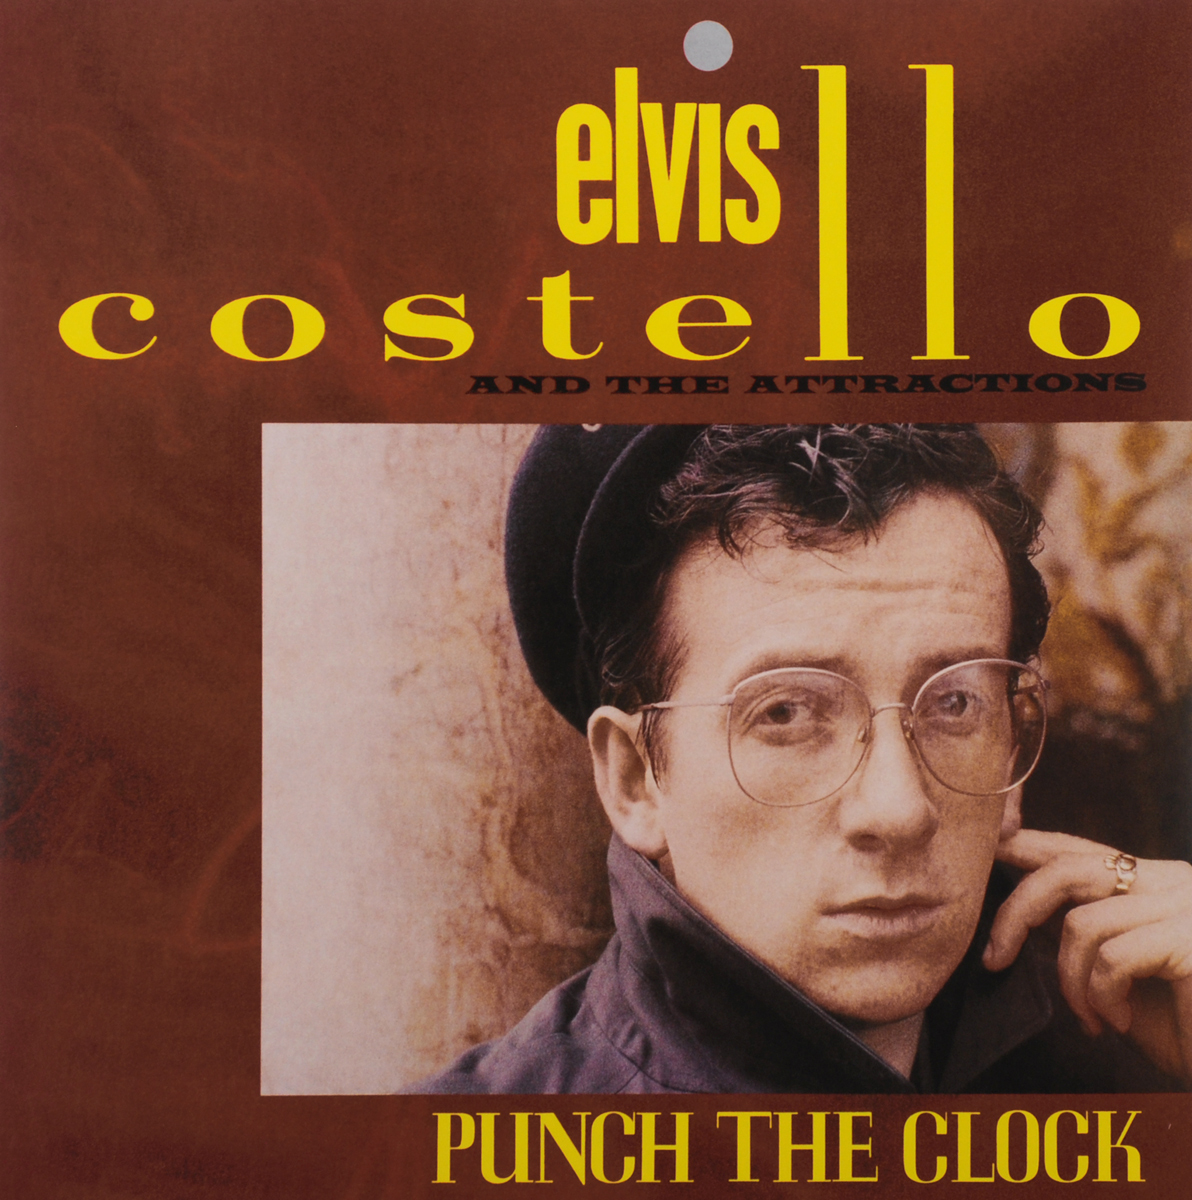 Элвис Костелло,The Attractions Elvis Costello And The Attractions. Punch The Clock (LP) элвис костелло the attractions elvis costello and the attractions ibmepderoloaml lp